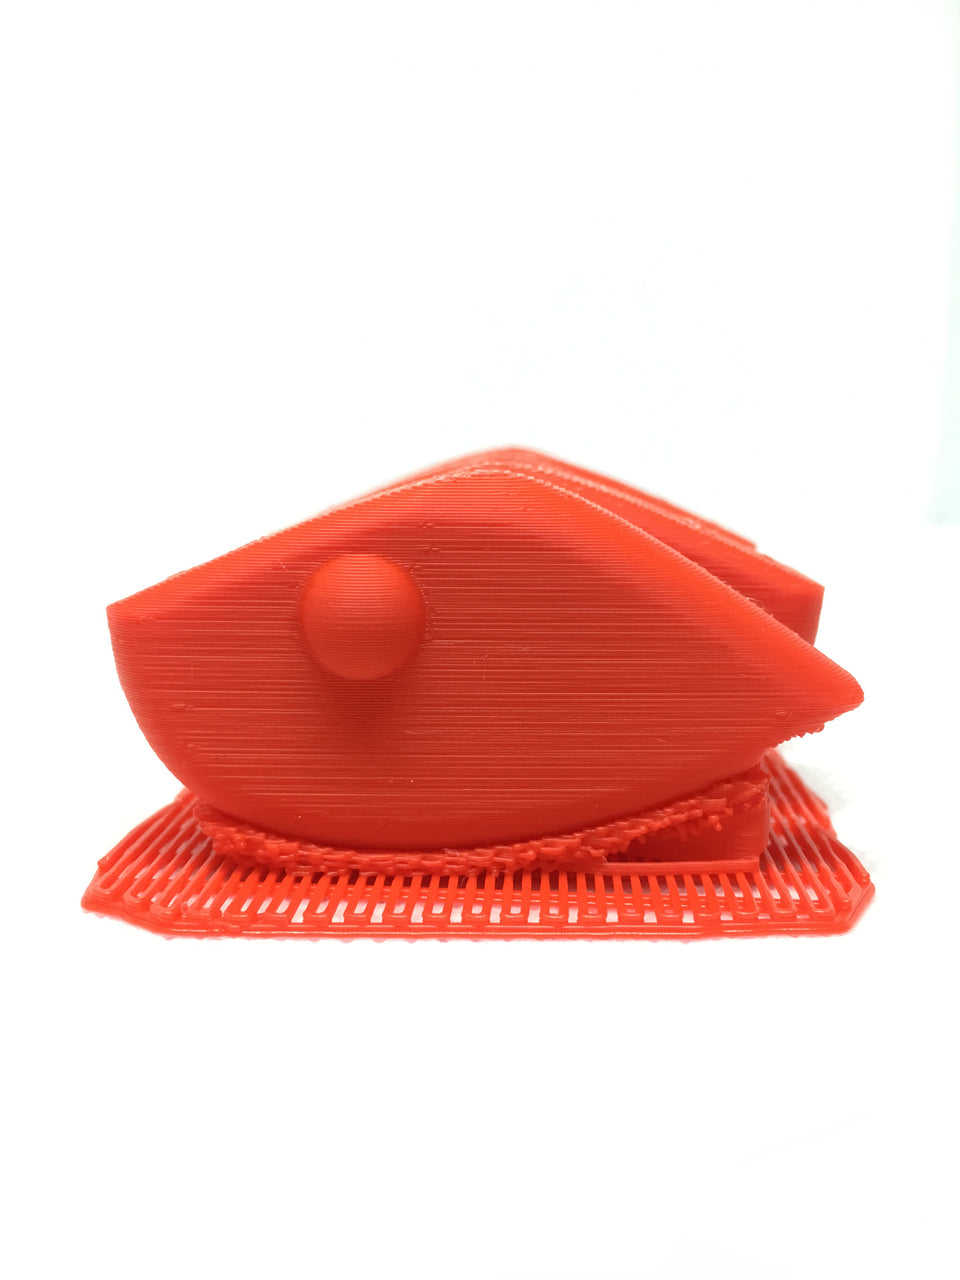 LIPLESS CRANKBAIT 2 INCH BLANK 3D PRINTED FRESH OFF THE PRINTER (RED)